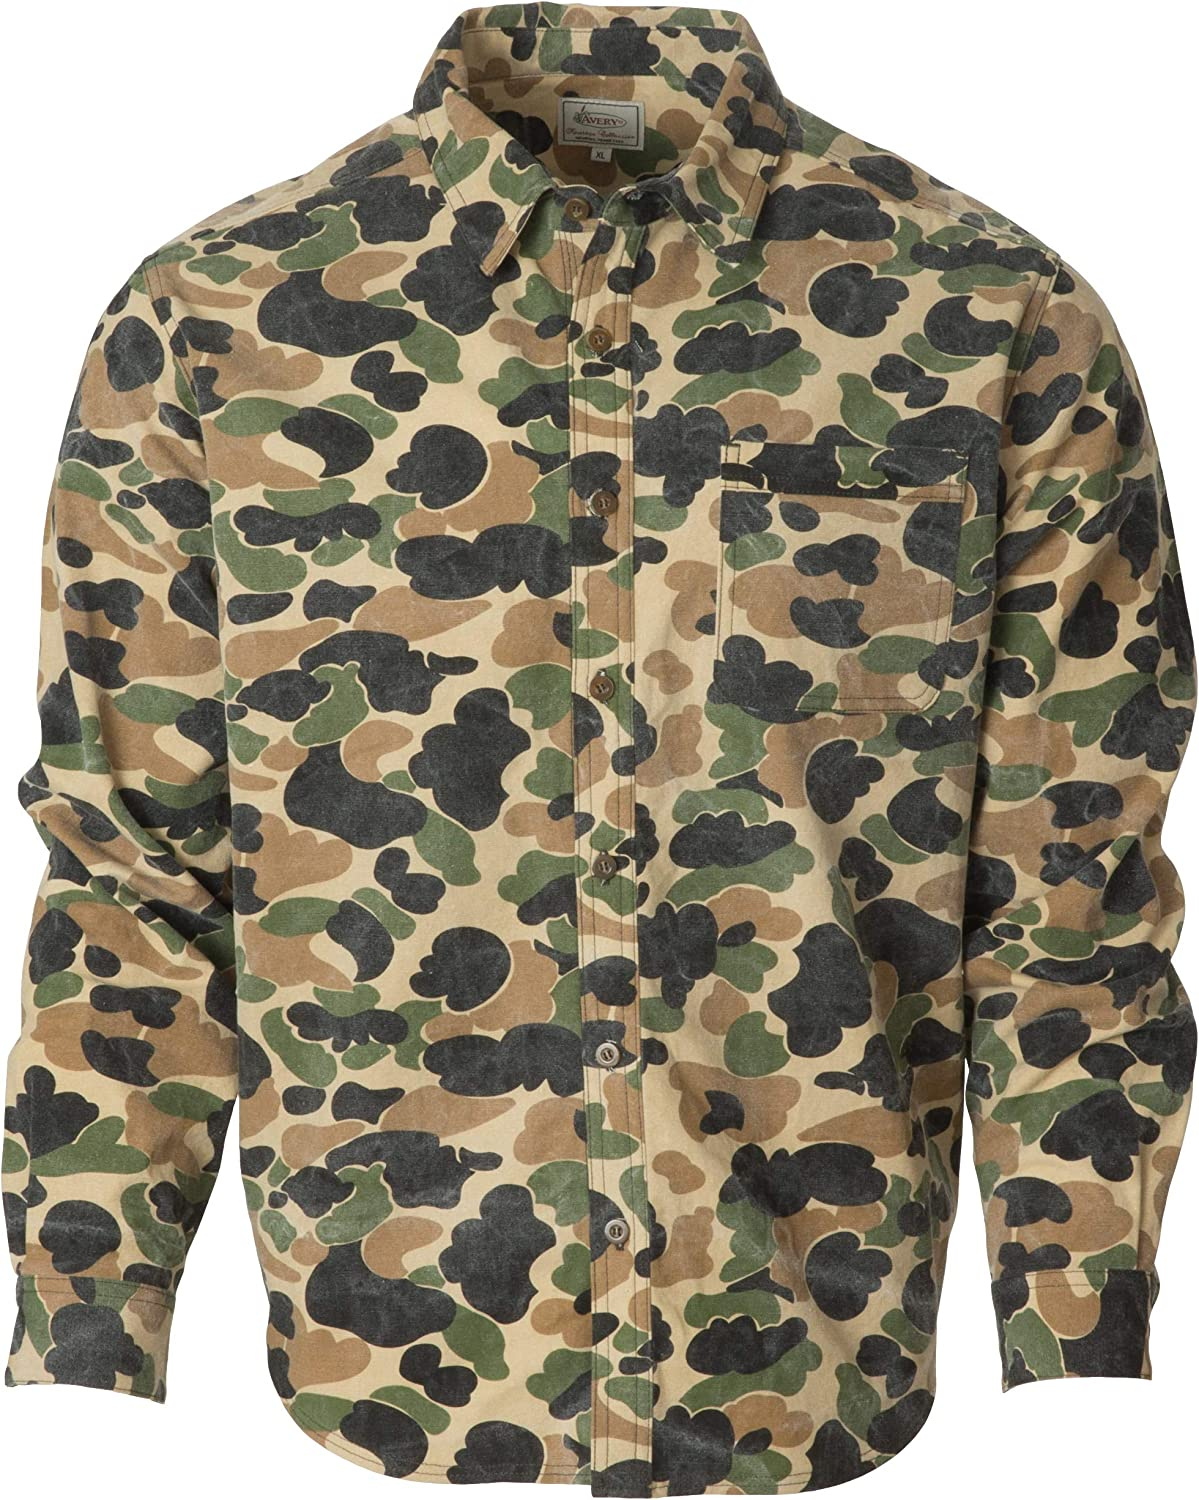 Avery Outdoors Heritage Collection Chamois Shirt Old School Camo